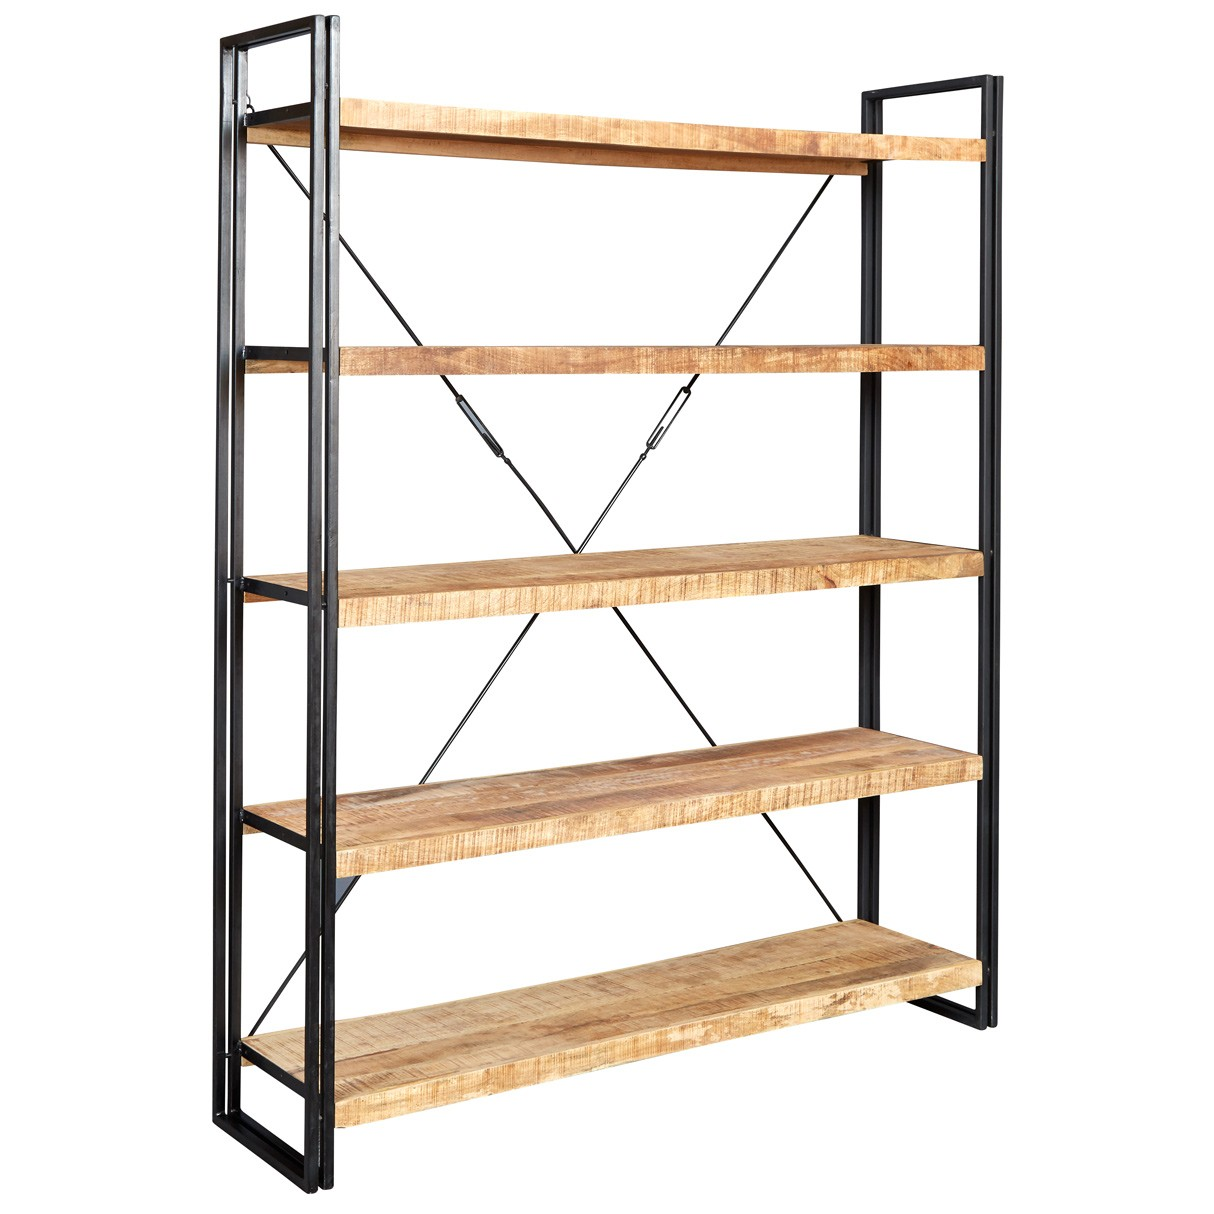 Cosmo Industrial Large Open Bookcase : id241 from www.indianhub.co.uk size 1214 x 1214 jpeg 154kB